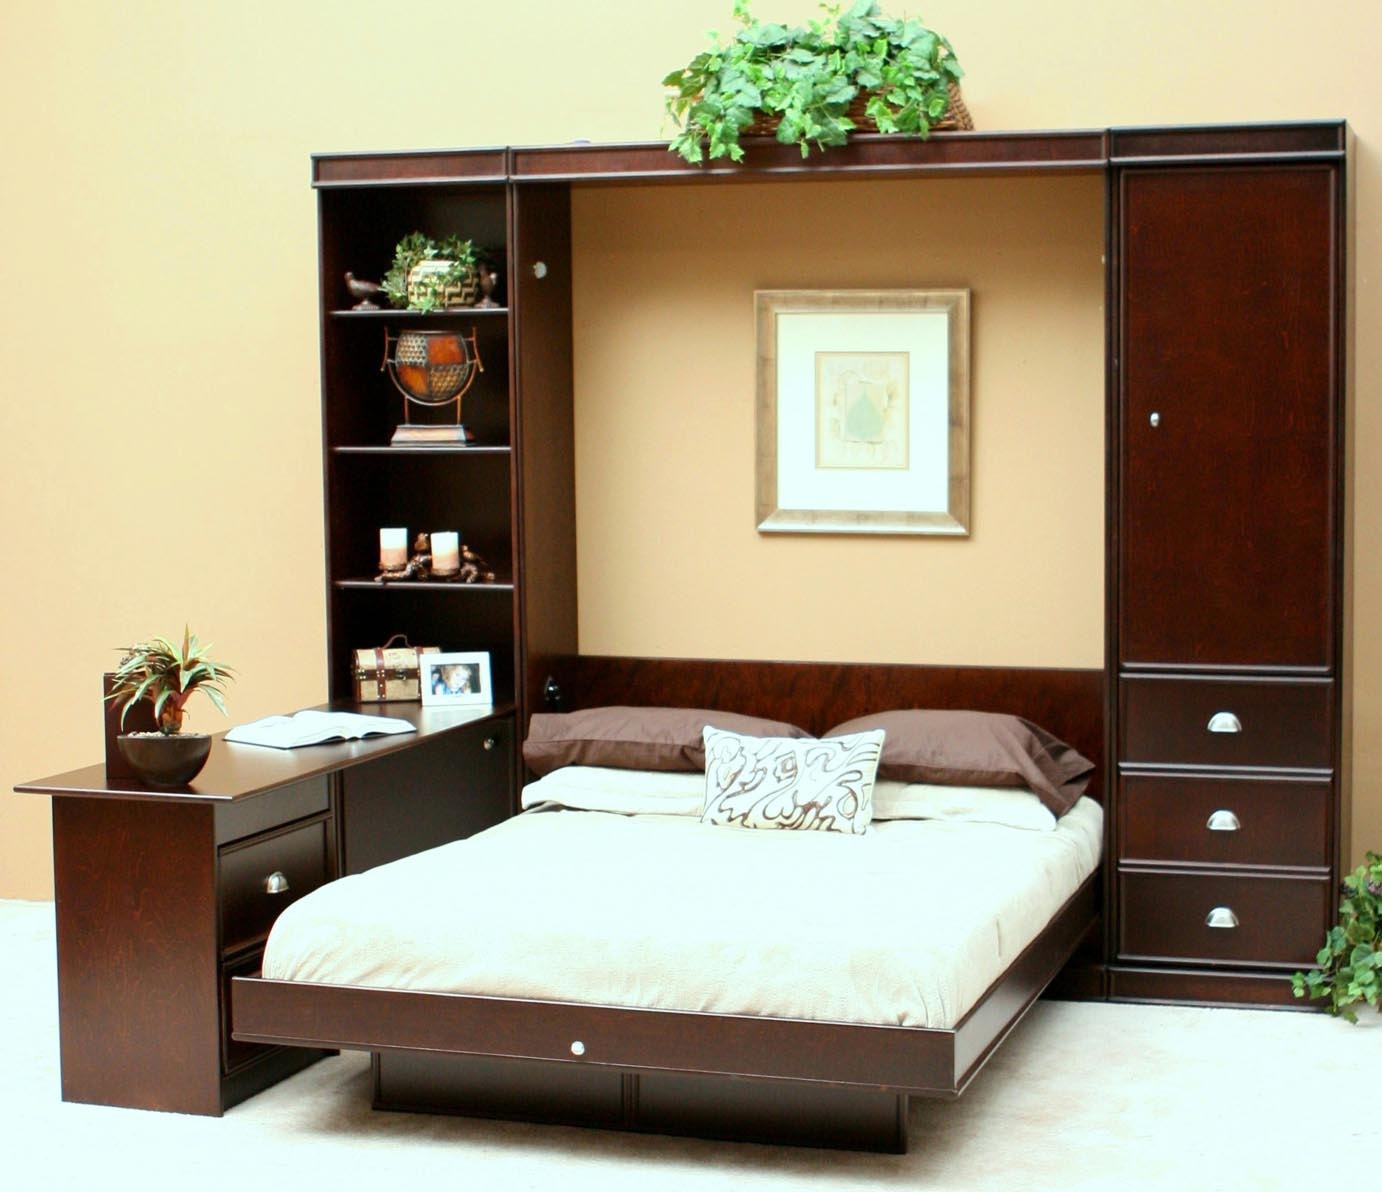 For More Information Contact Ross Endicott At Endicott Home Furnishings  (207) 883 3264 Or Online At Www.condofurniture.com